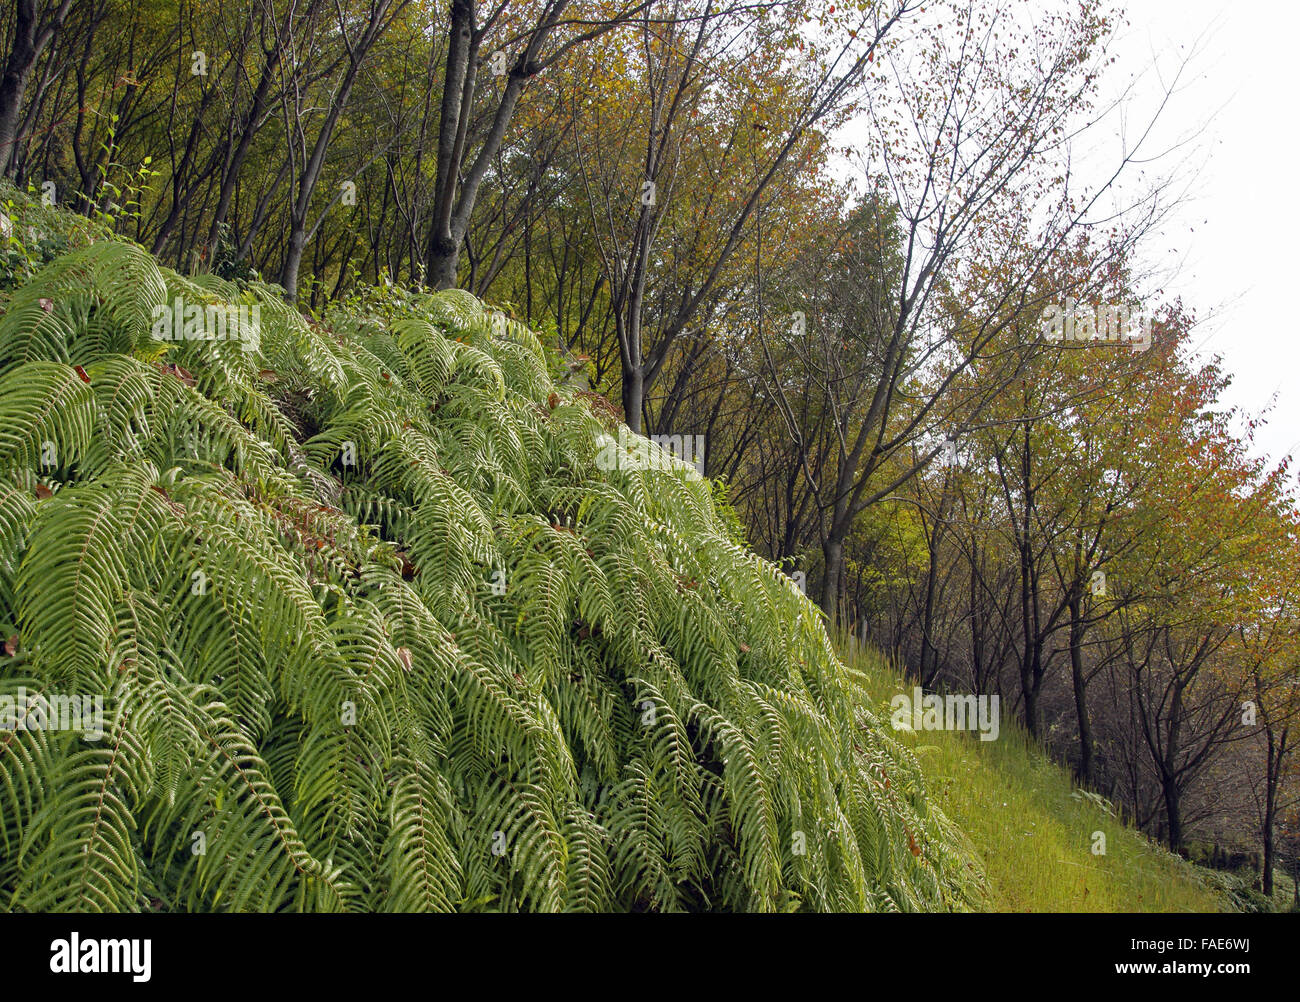 Ferns and trees on a steep bank hillside - Stock Image